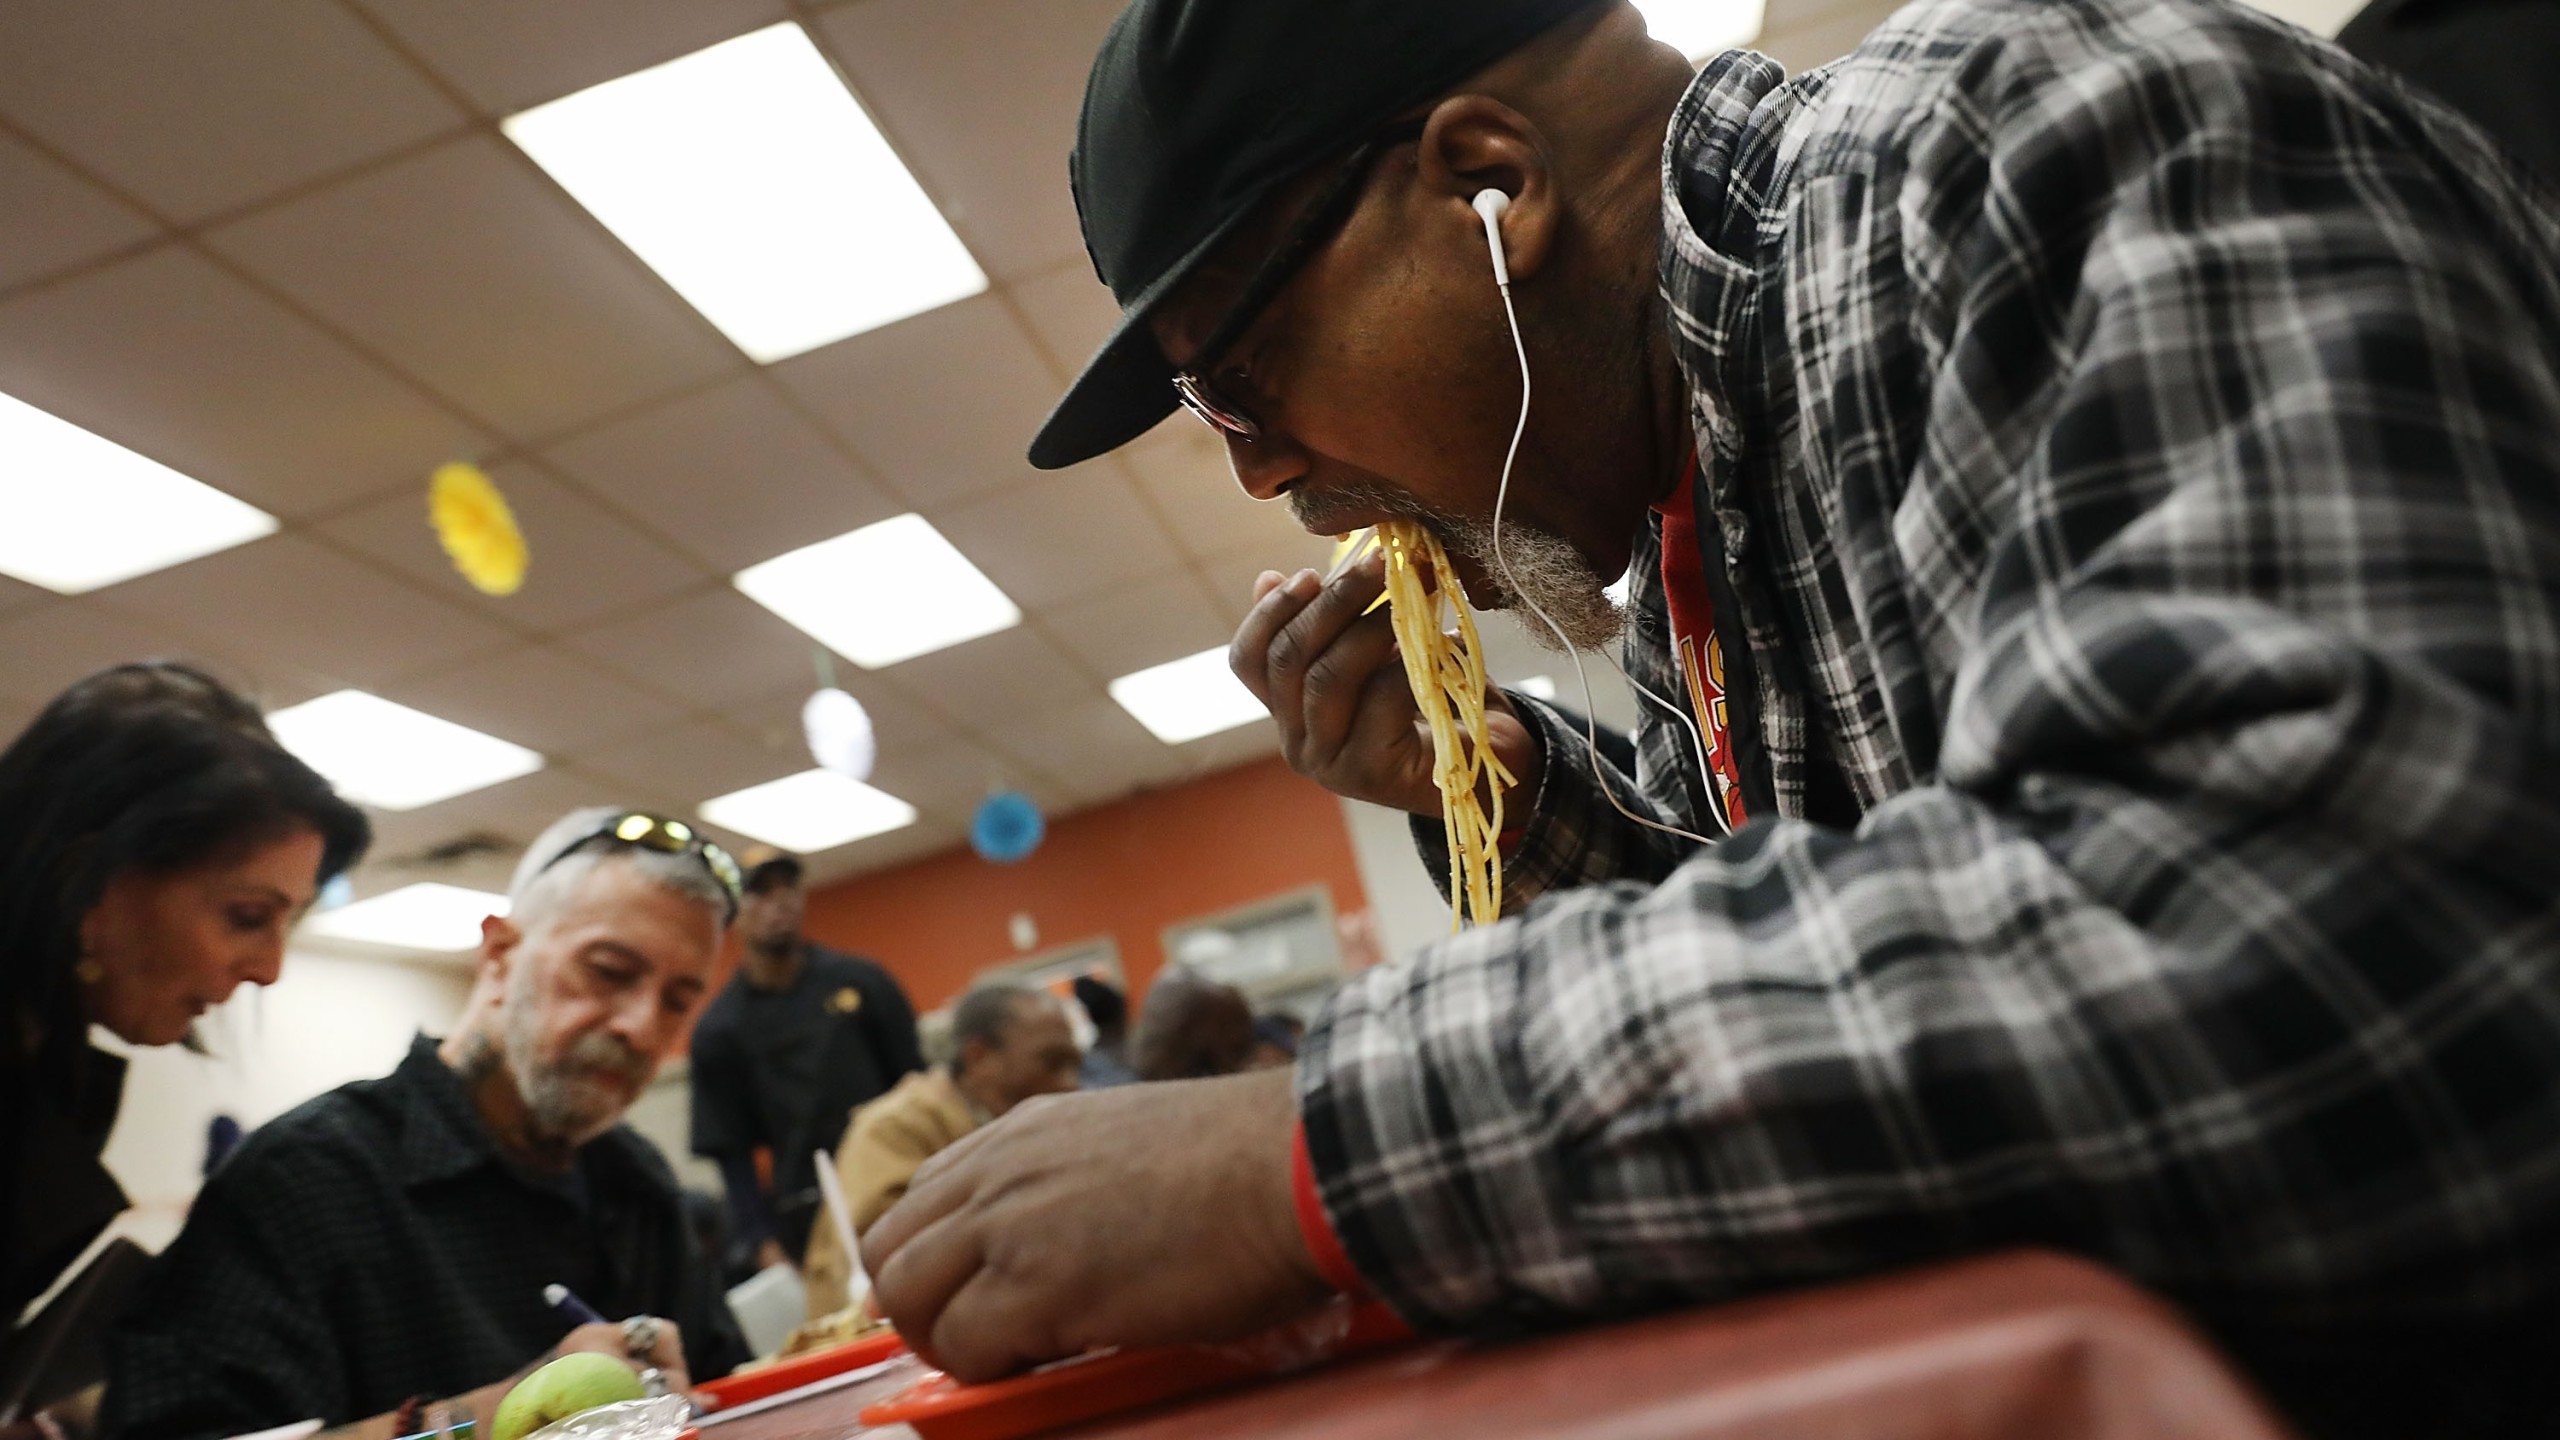 Cecil Sears receives an evening meal at the Food Bank For New York City community kitchen on May 15, 2017, in New York City. (Credit: Spencer Platt/Getty Images)